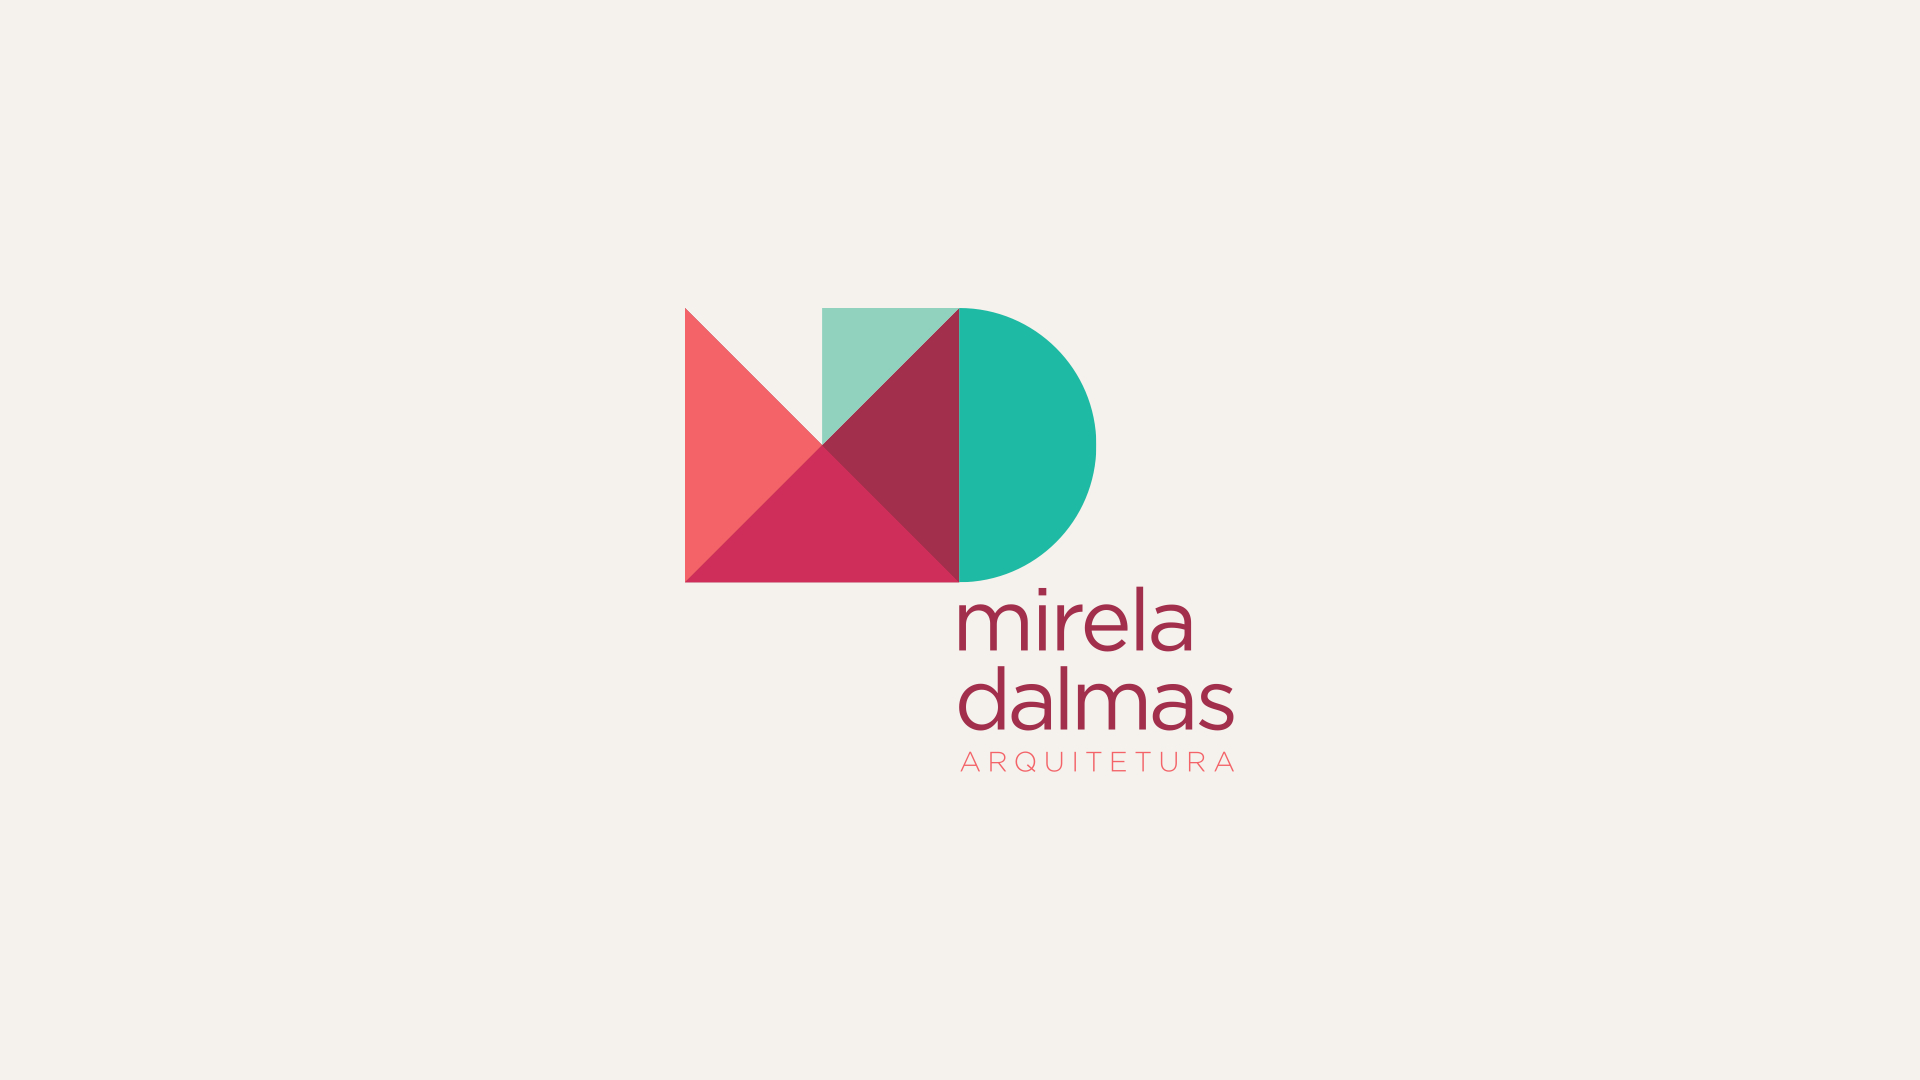 visual branding material for of mirela dalmas architecture office in brazil i focused on the initials of her name with a geometrical approach in relation architect office names